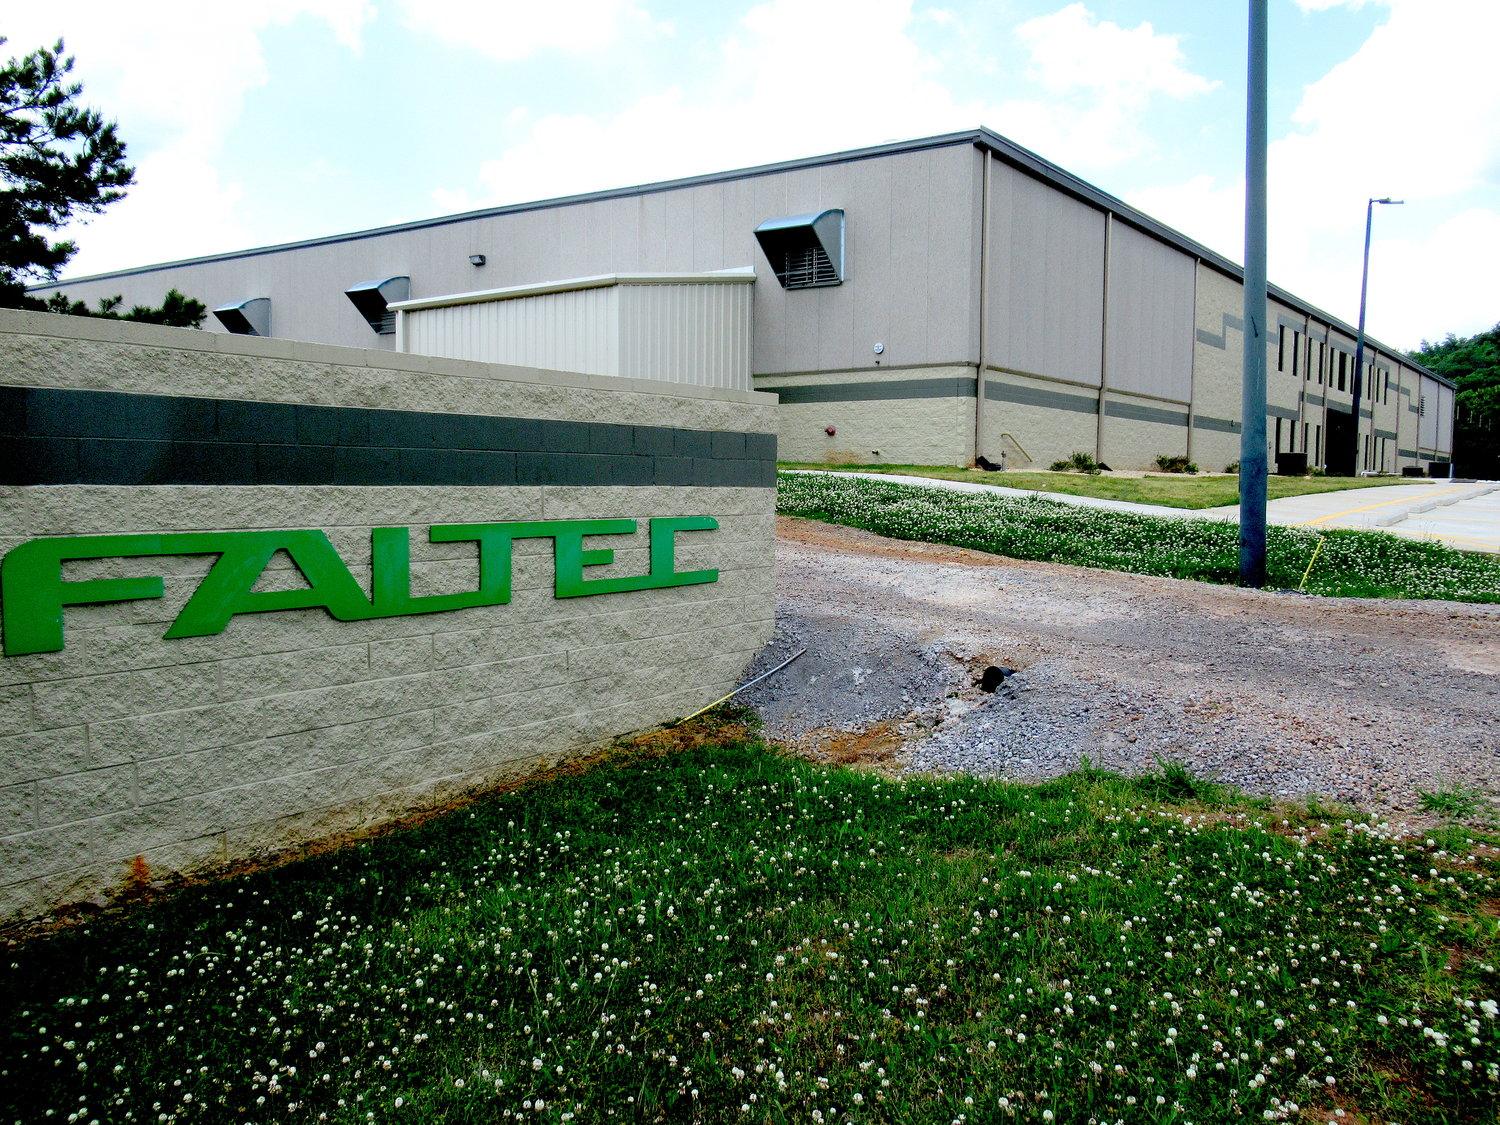 Faltec America, Inc. is expected to lay off more than 40 employees at its Adairsville manufacturing facility next month.